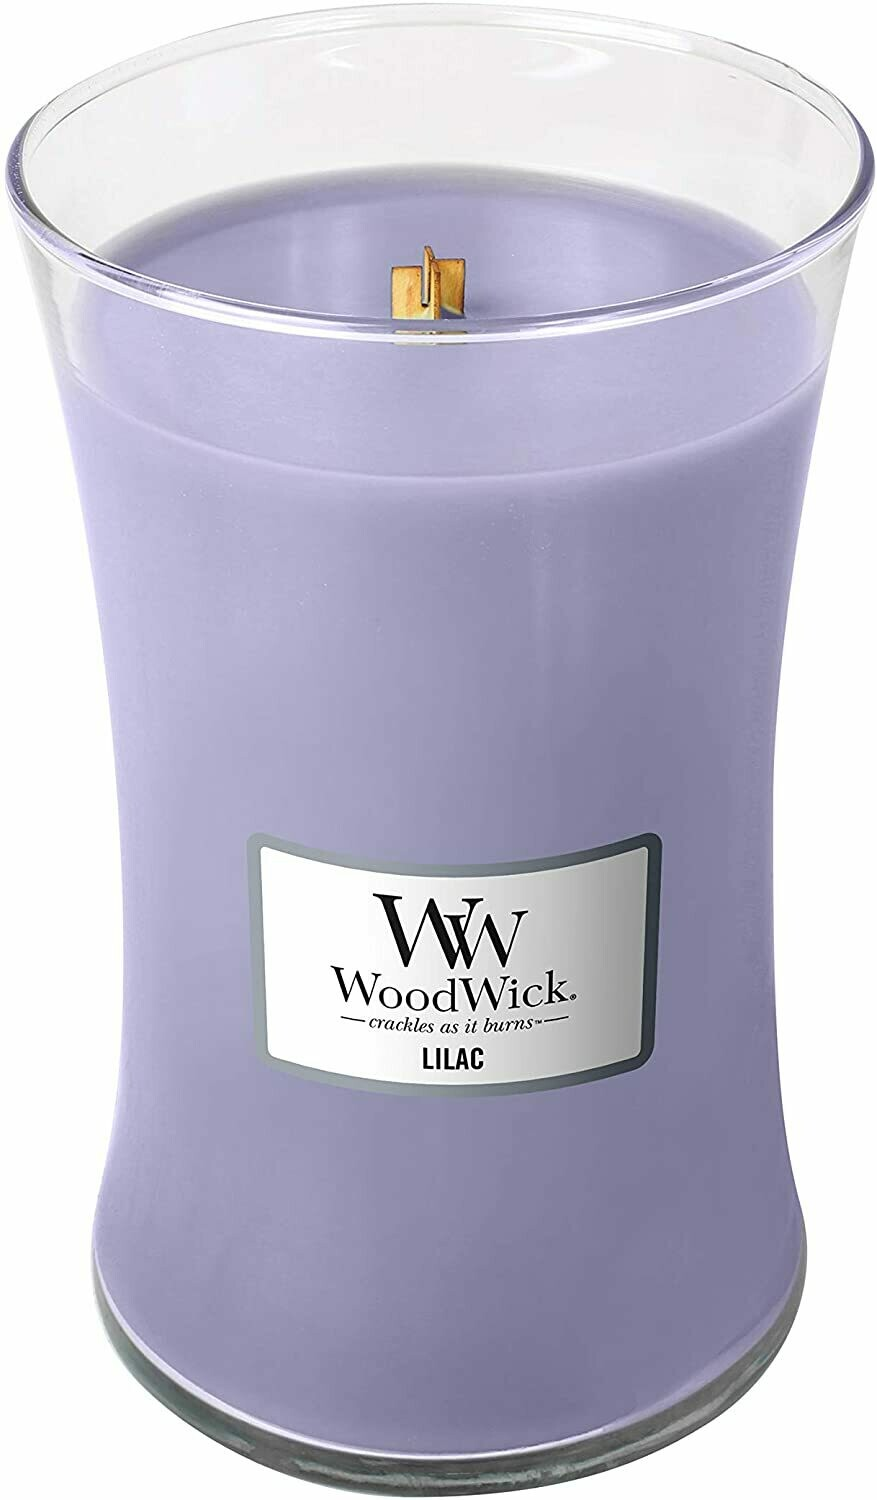 Lilac - Large - WoodWick Candle